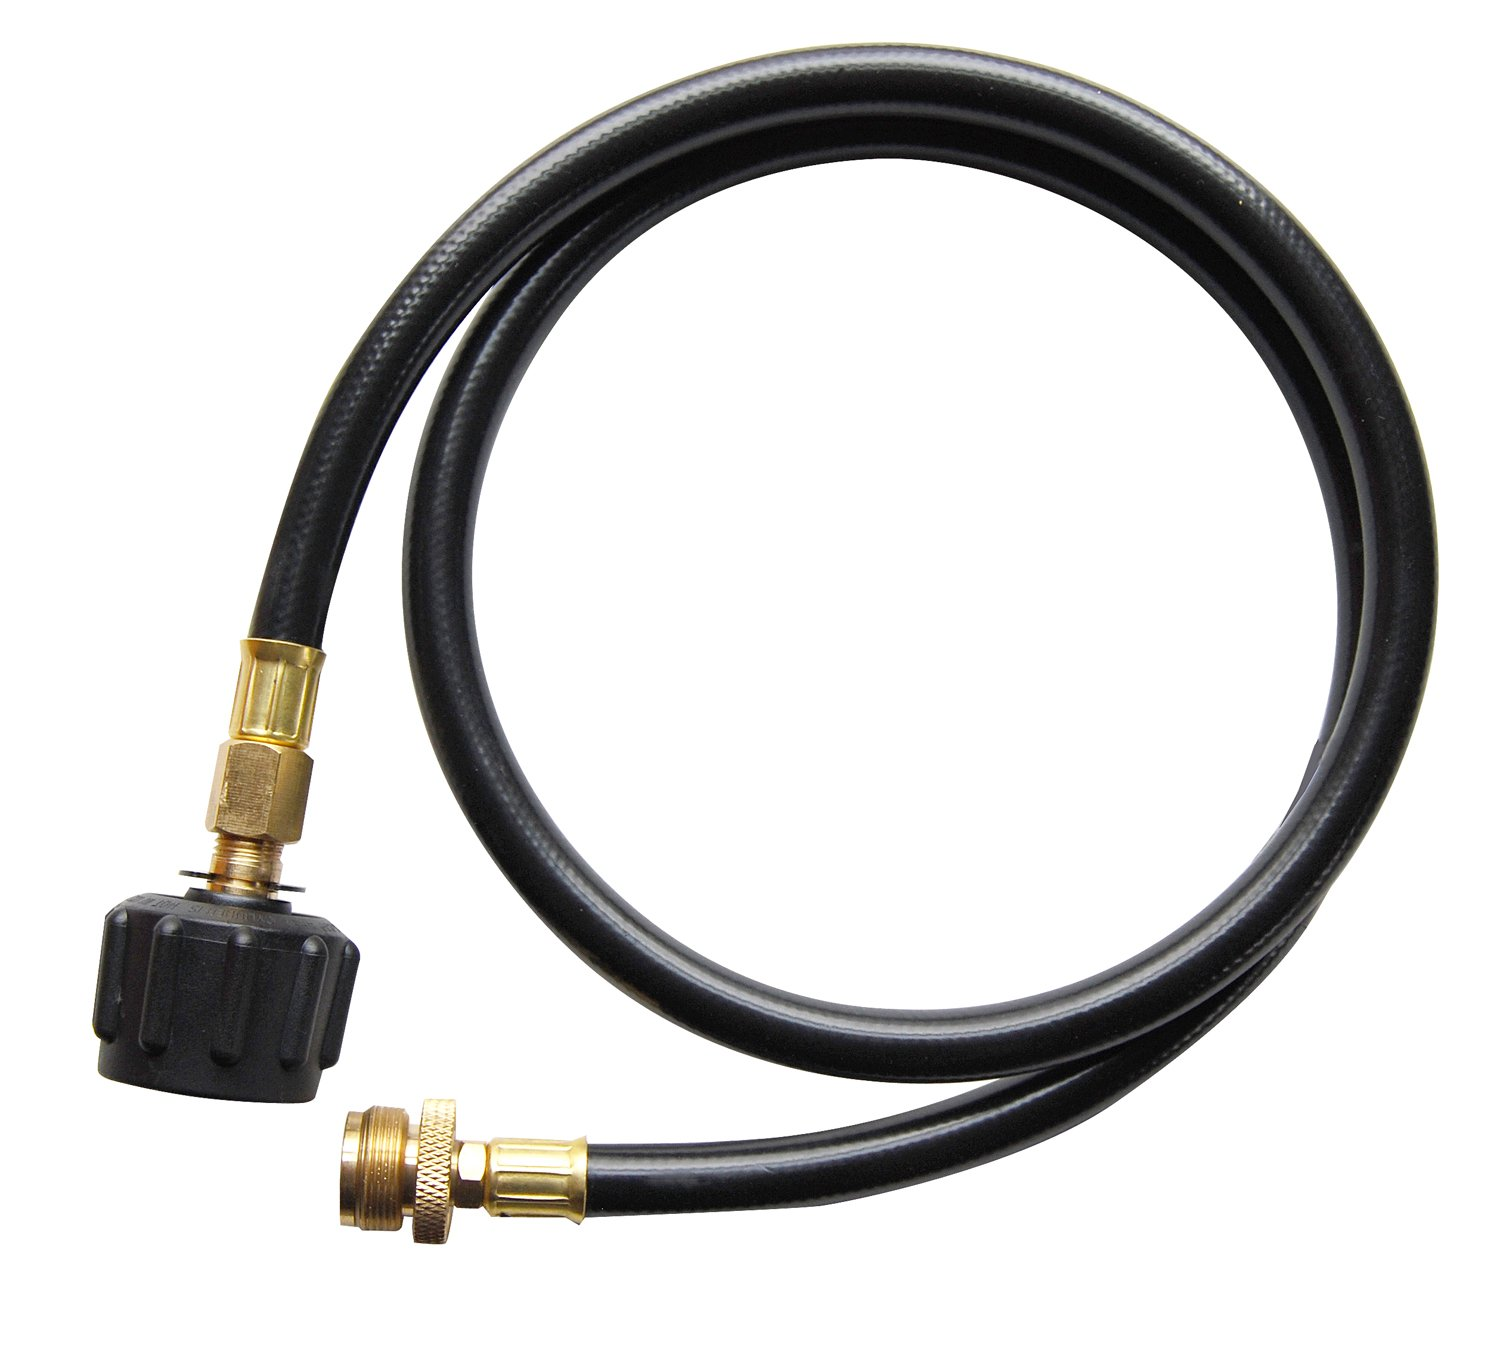 Cuisinart QG-012B LP Adapter Hose, 4-Foot